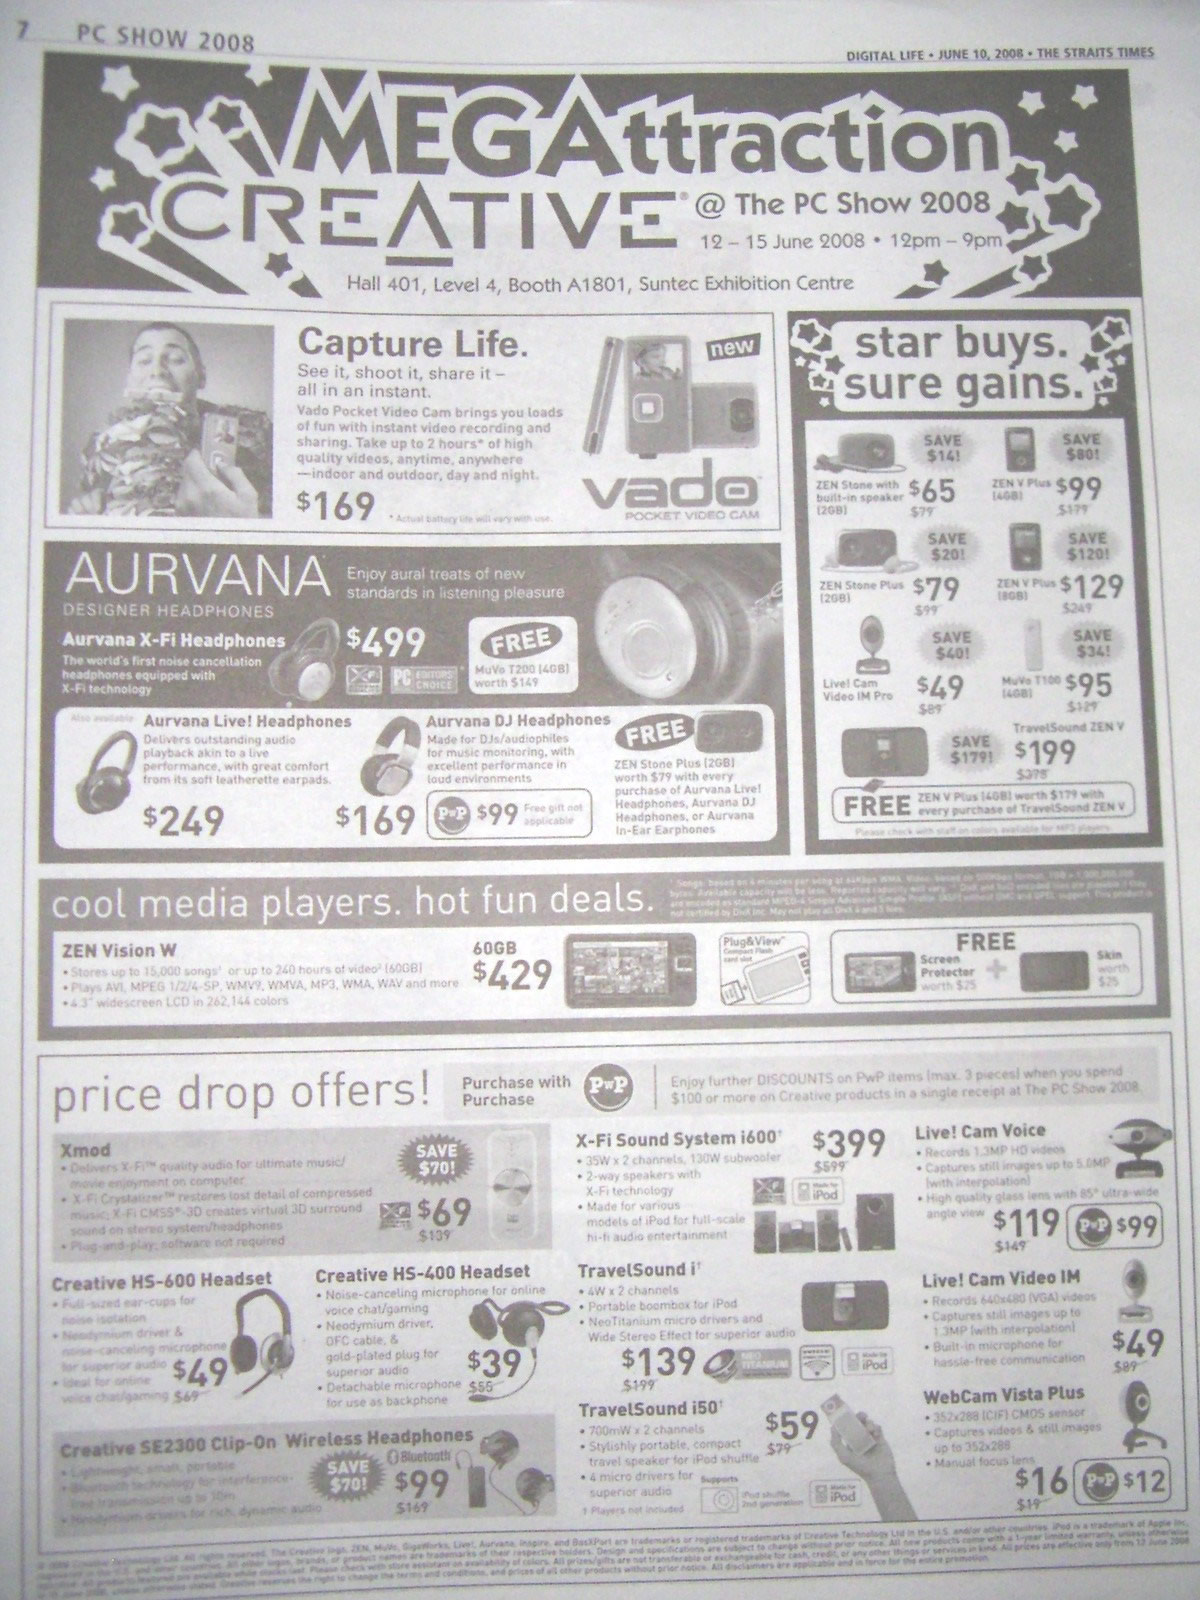 PC Show 2008 price list image brochure of Creative Ad